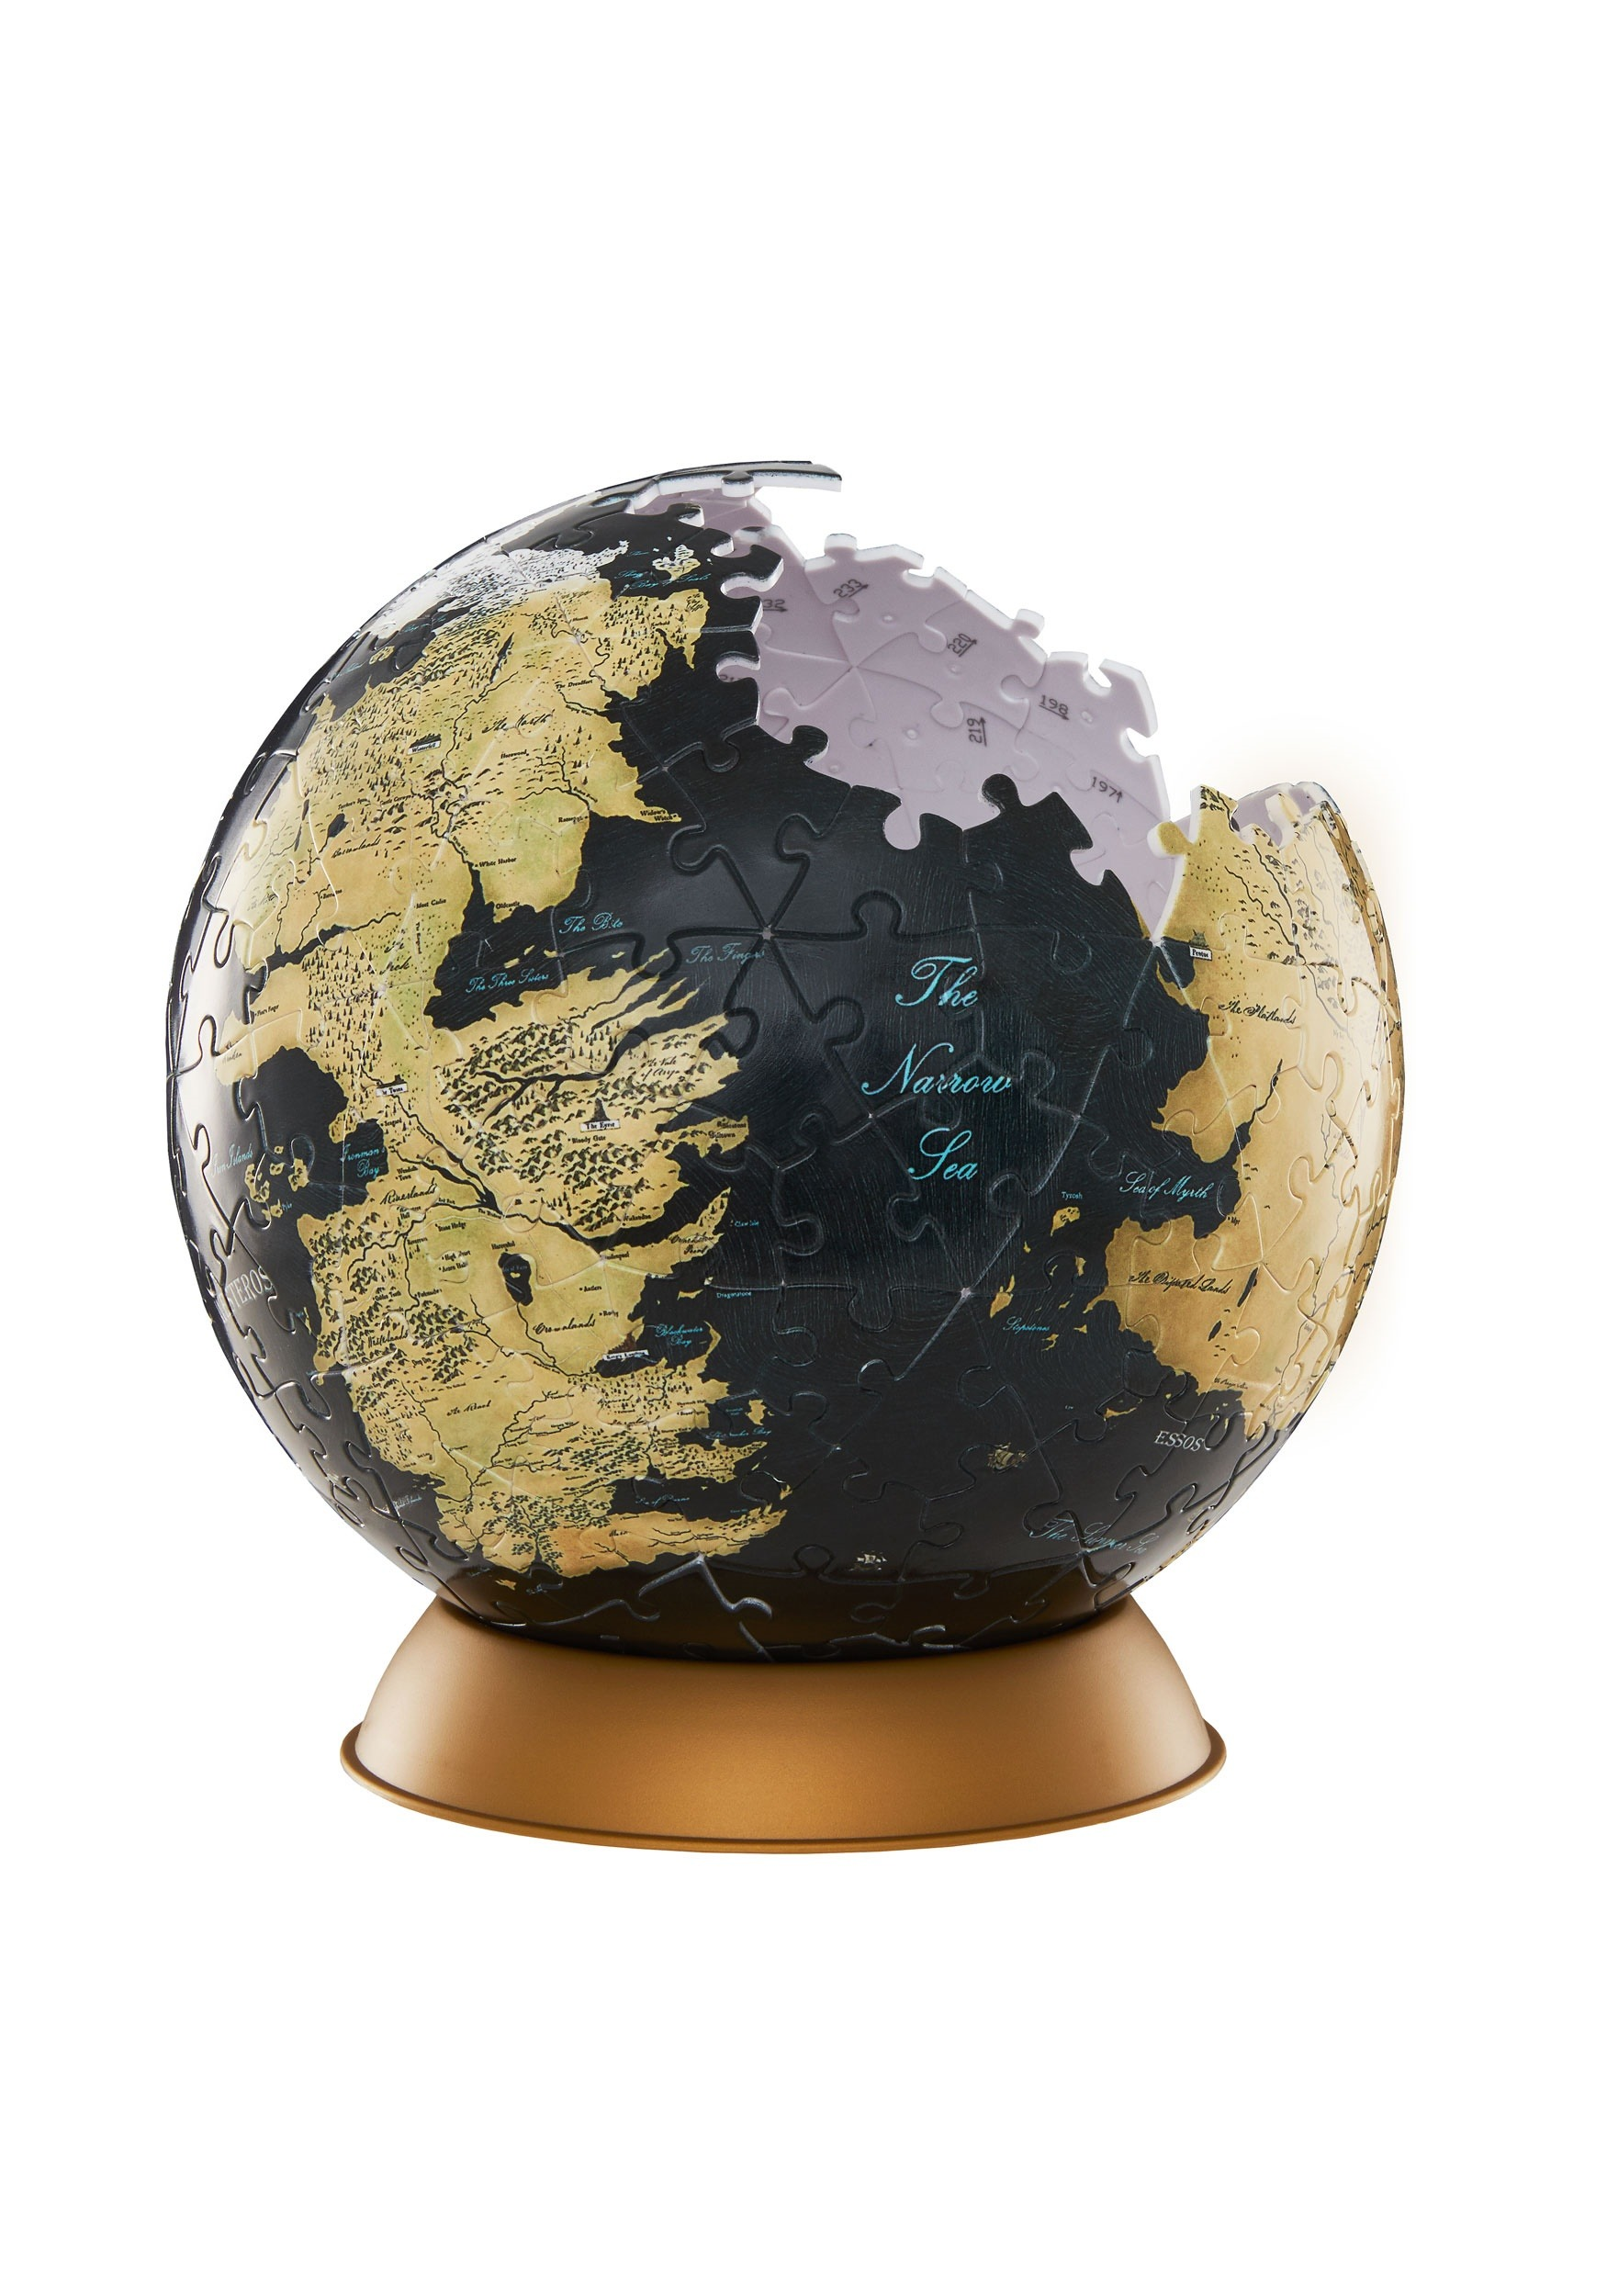 240 Pc Game Of Thrones Globe 3d Jigsaw Puzzle